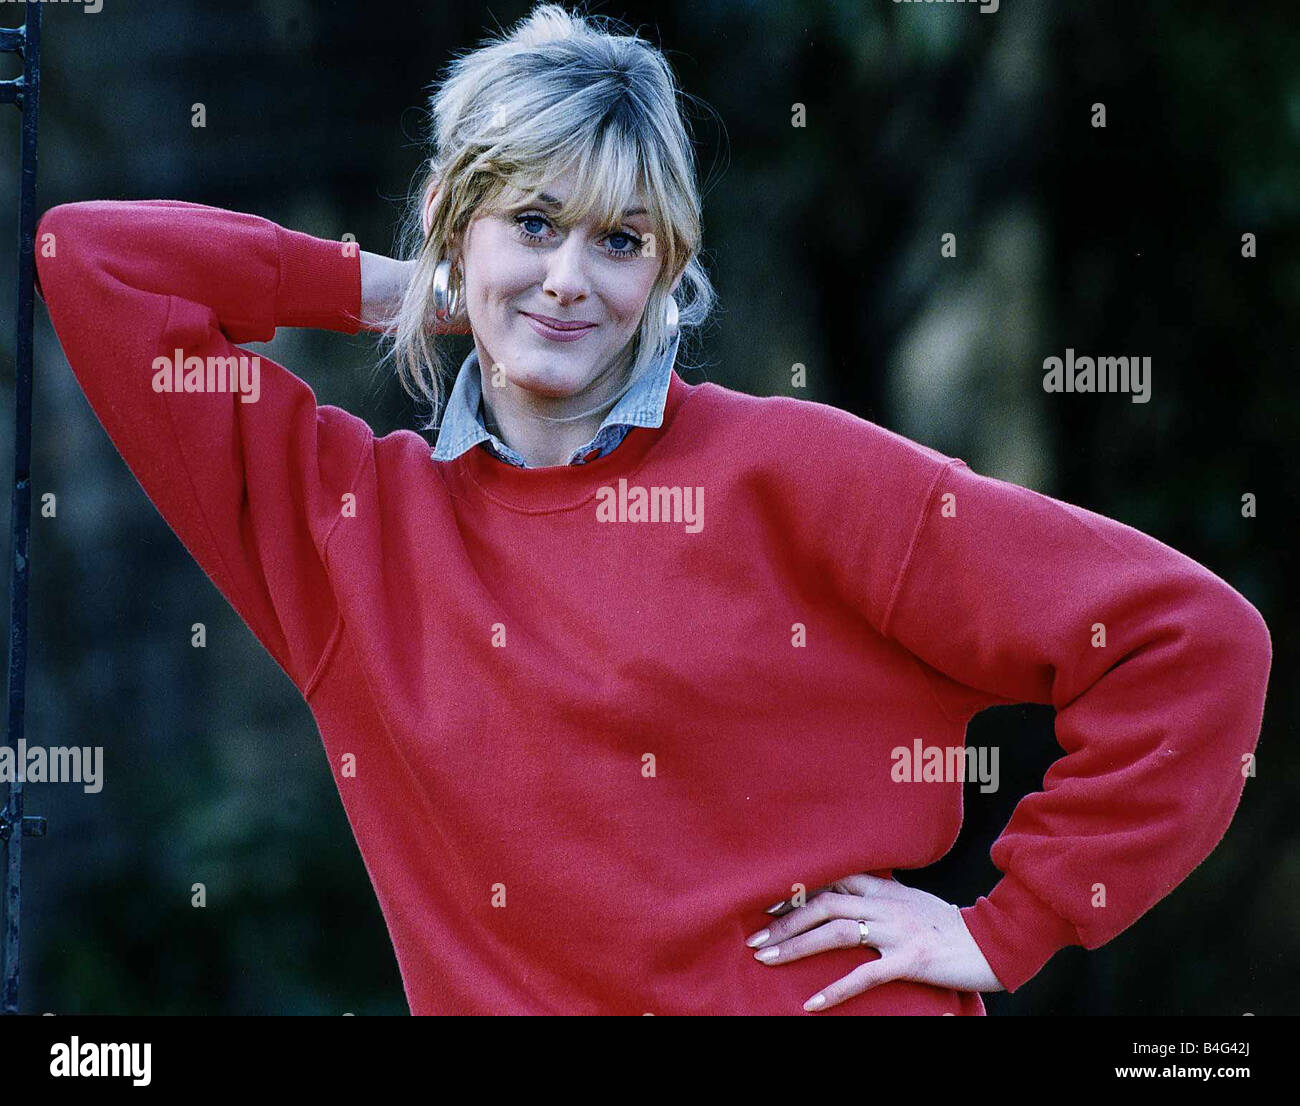 picture Sarah Lancashire: I Truly Believe That Gender Has Nothing To Do With Who You Fall For